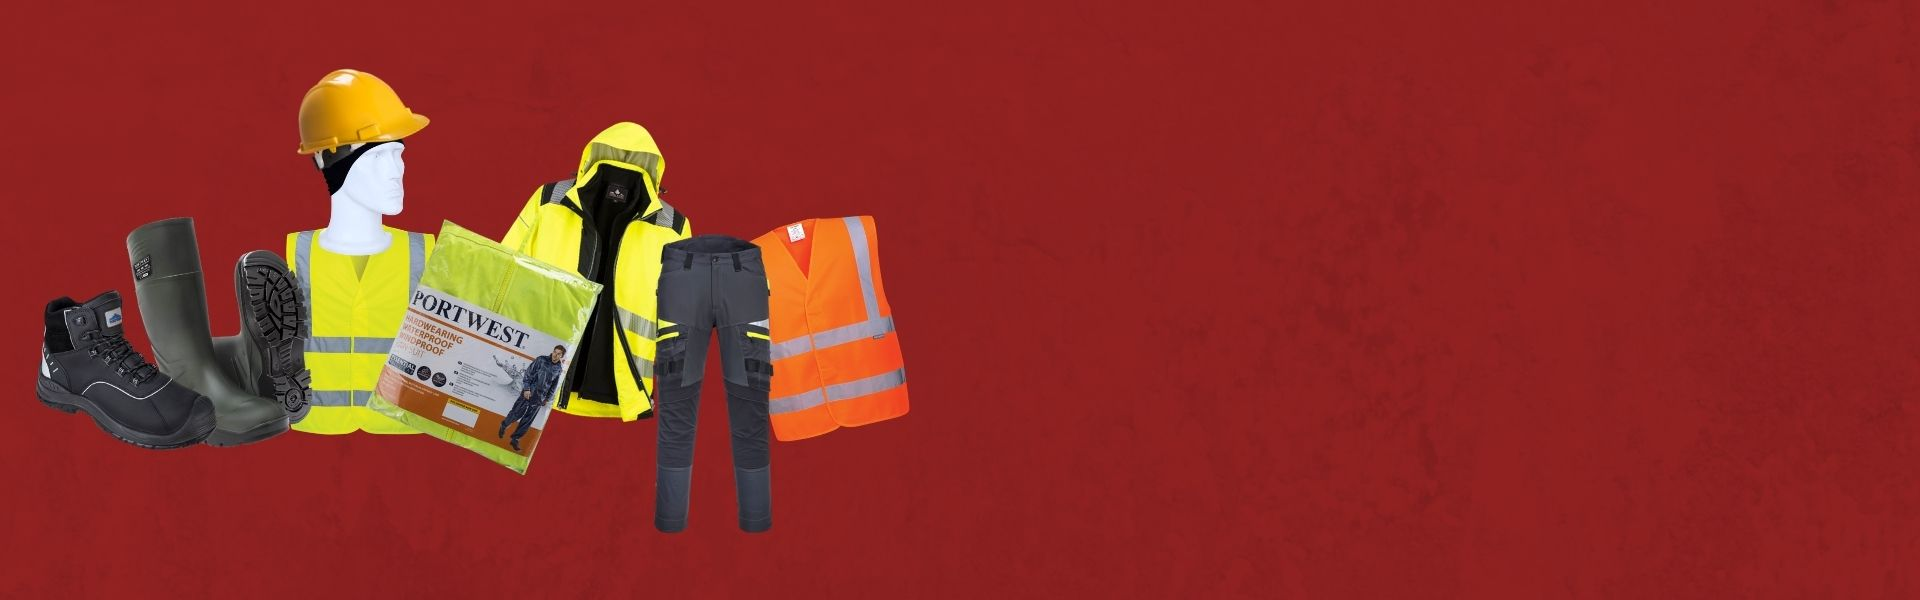 Get 25% off our new Workwear range!